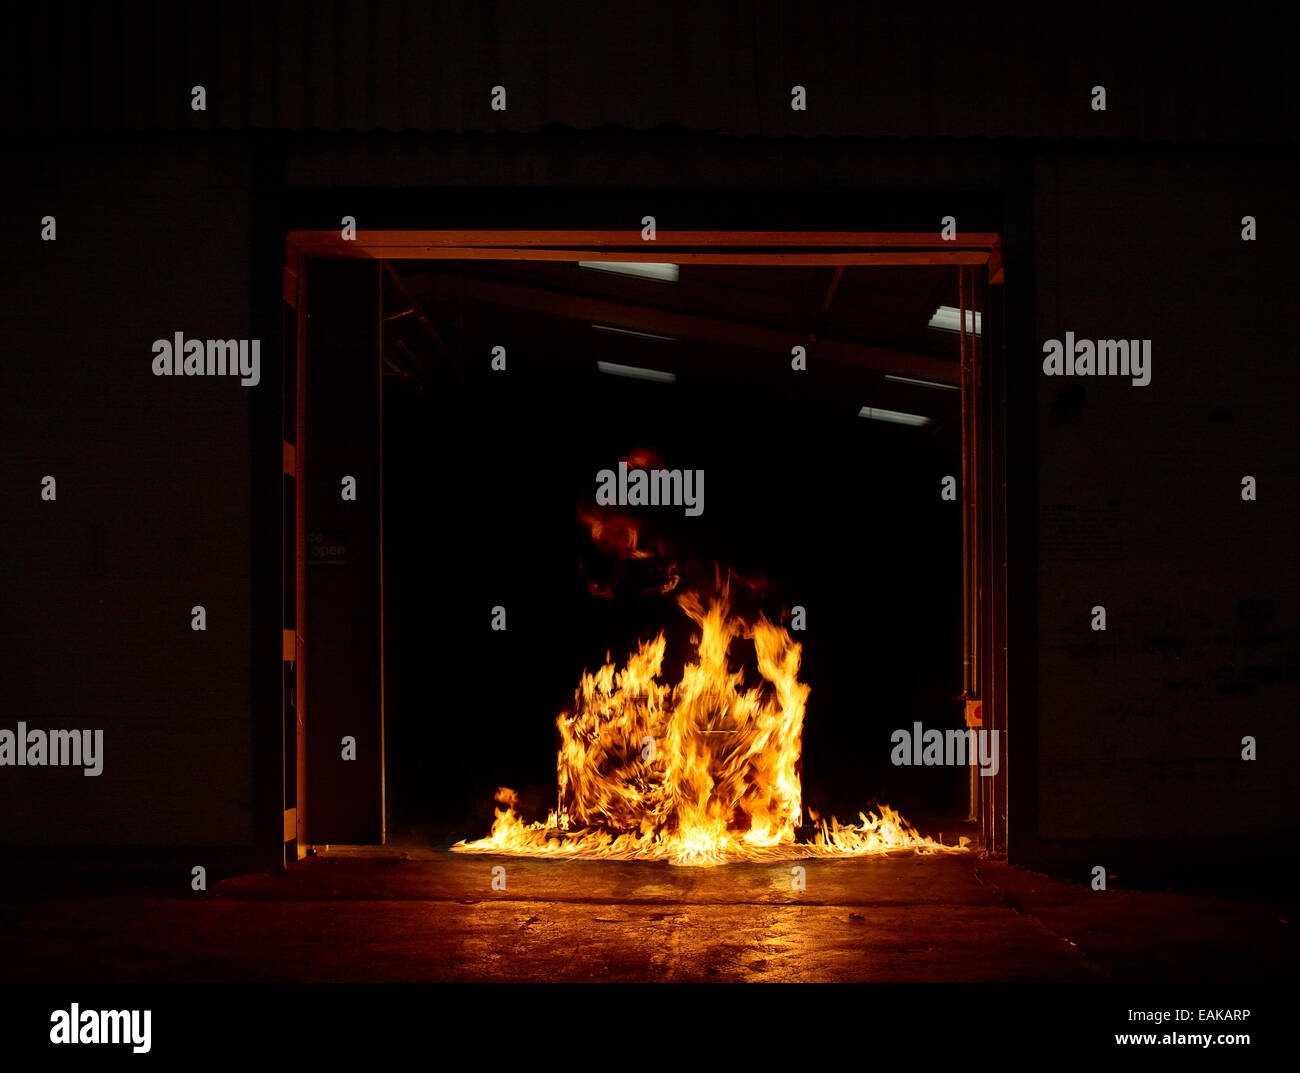 set of drawers on fire engulfed in flames - Stock Image